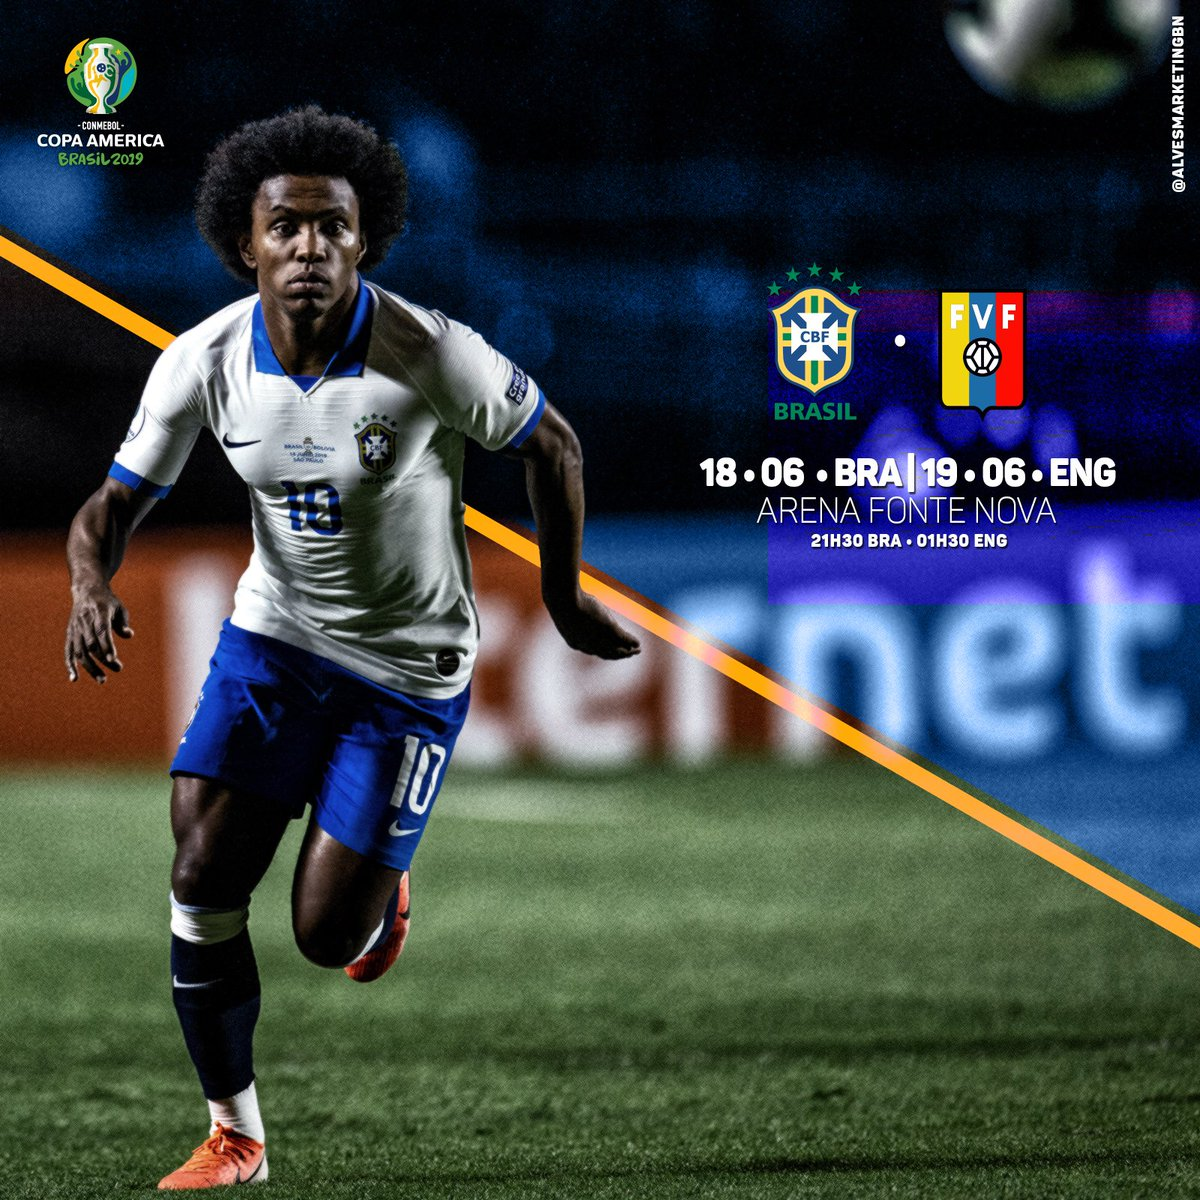 Willian @willianborges88